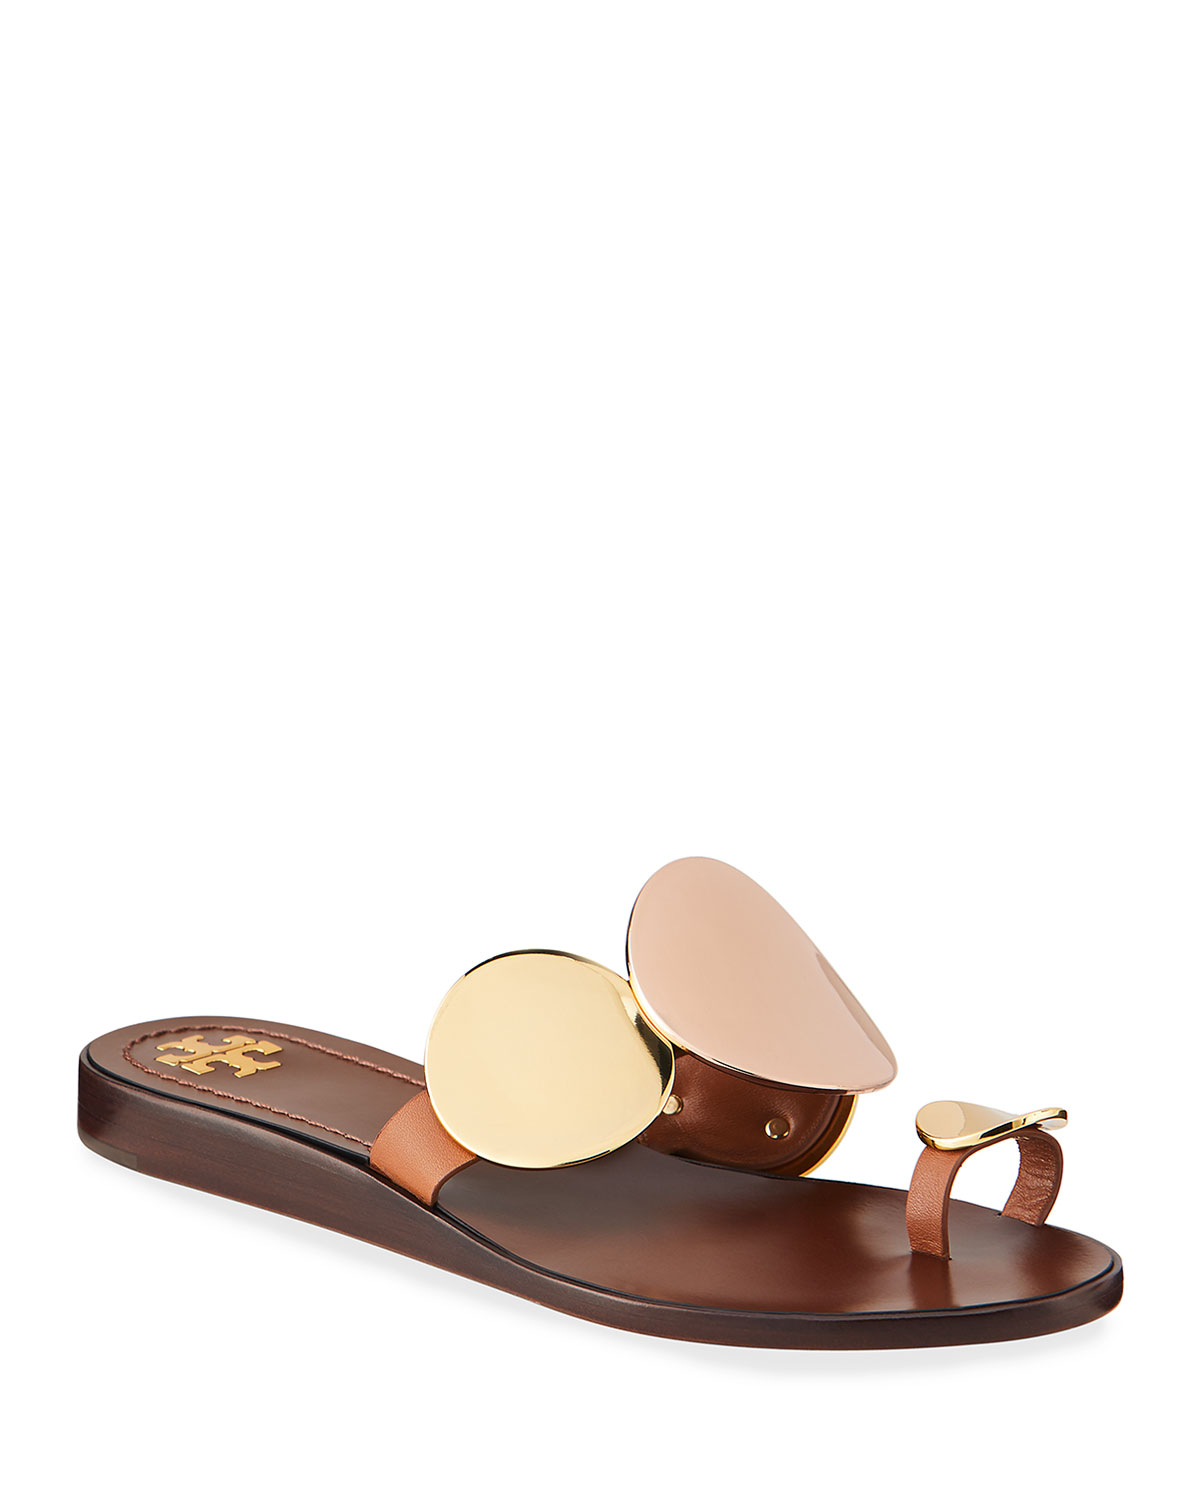 Tory Burch Patos Multi Disk Sandals